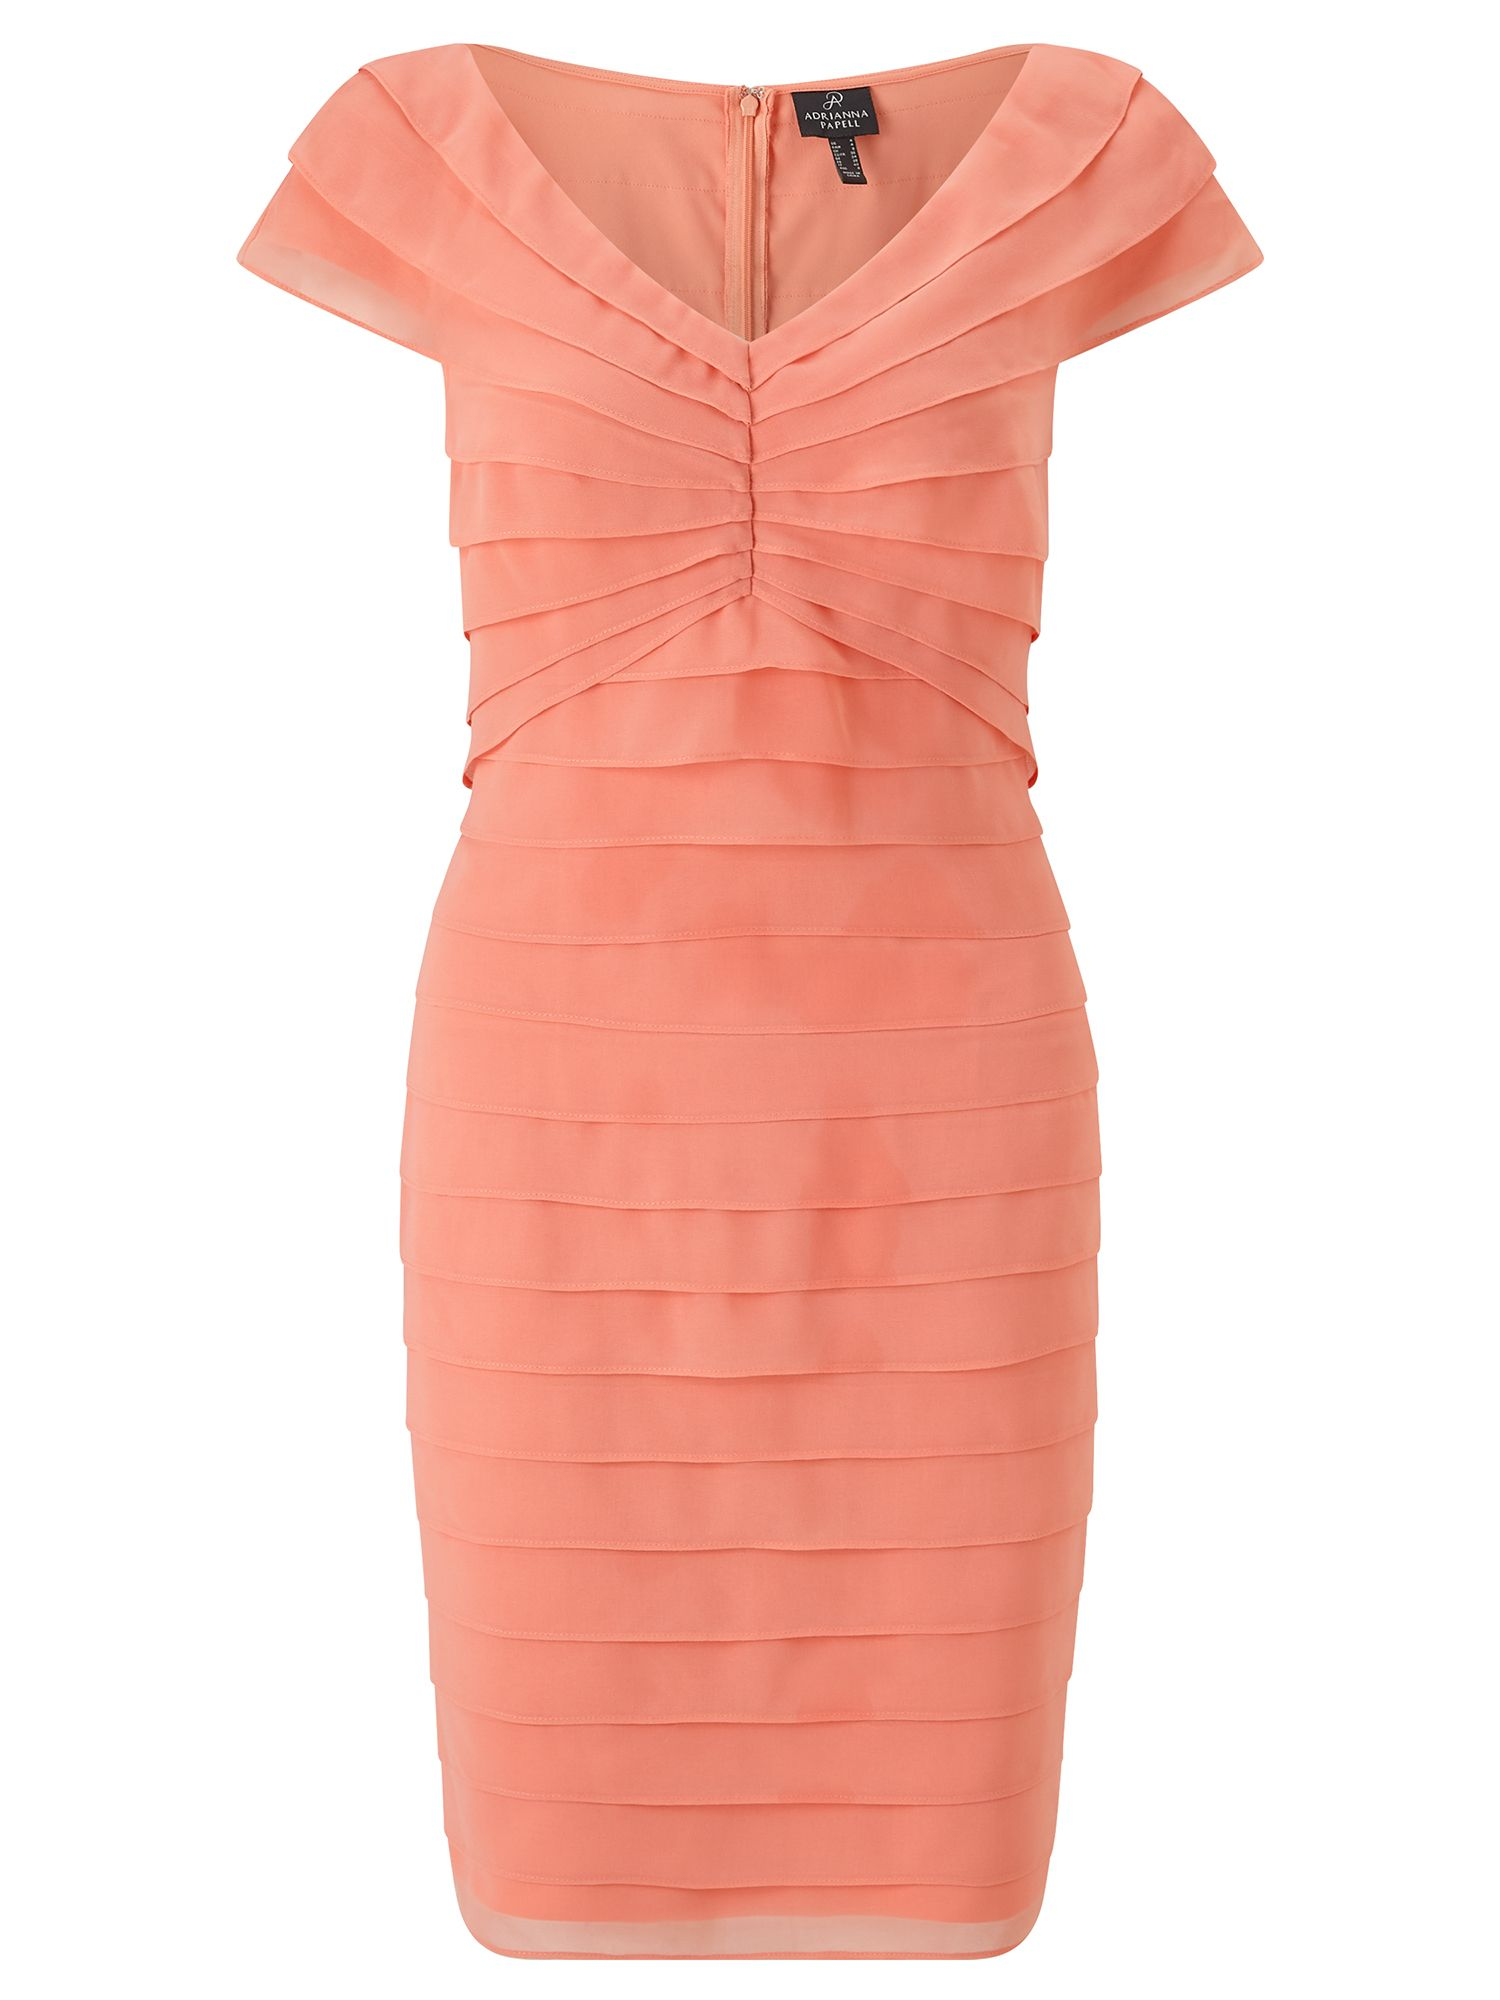 Adrianna Papell Sleeveless Ruffle Shift Dress, Orange